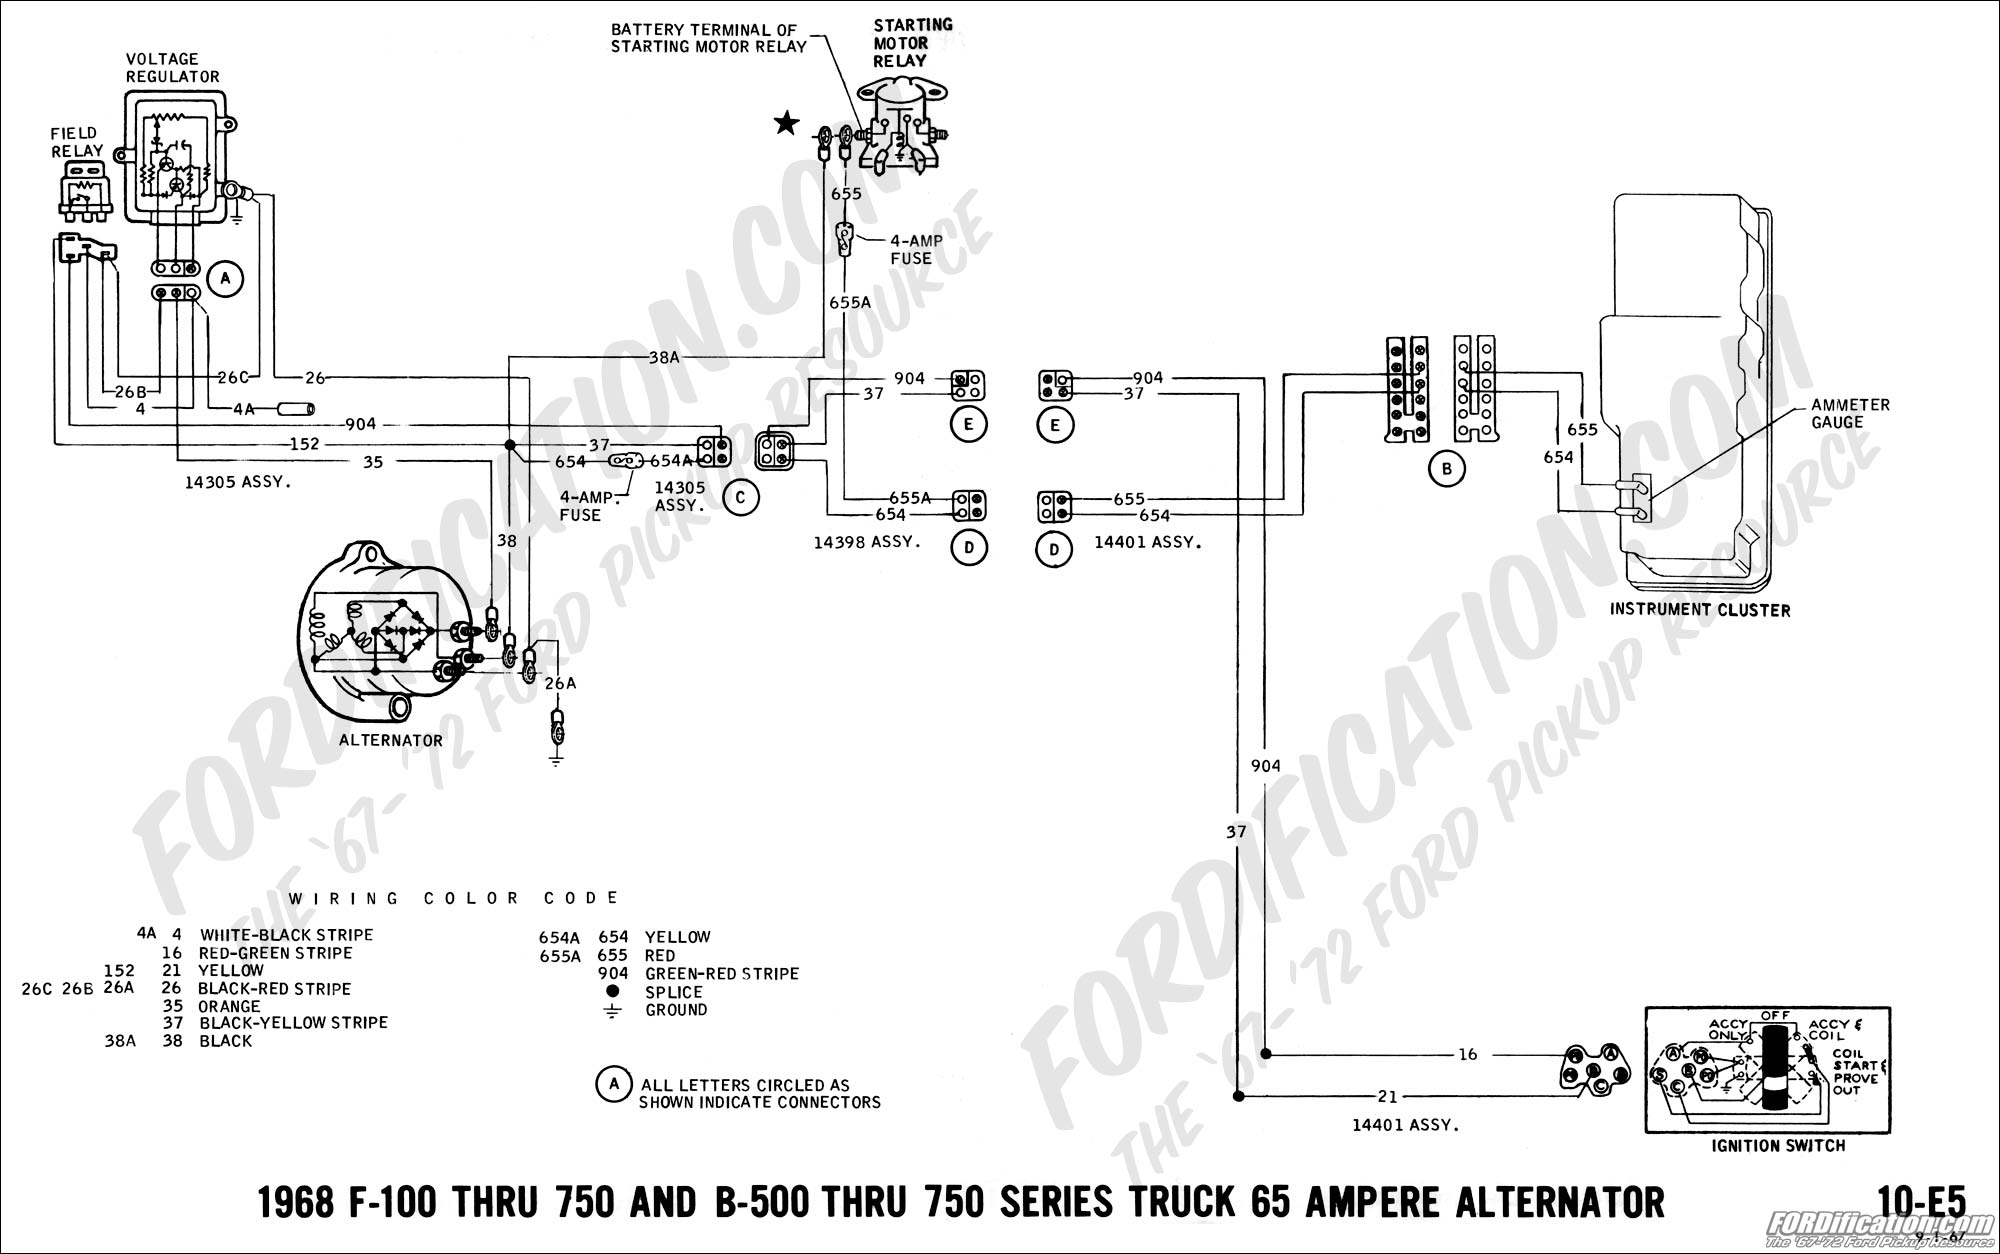 68 07 1977 ford f100 alternator wiring diagram wiring diagram and 65 mustang alternator wiring diagram at n-0.co